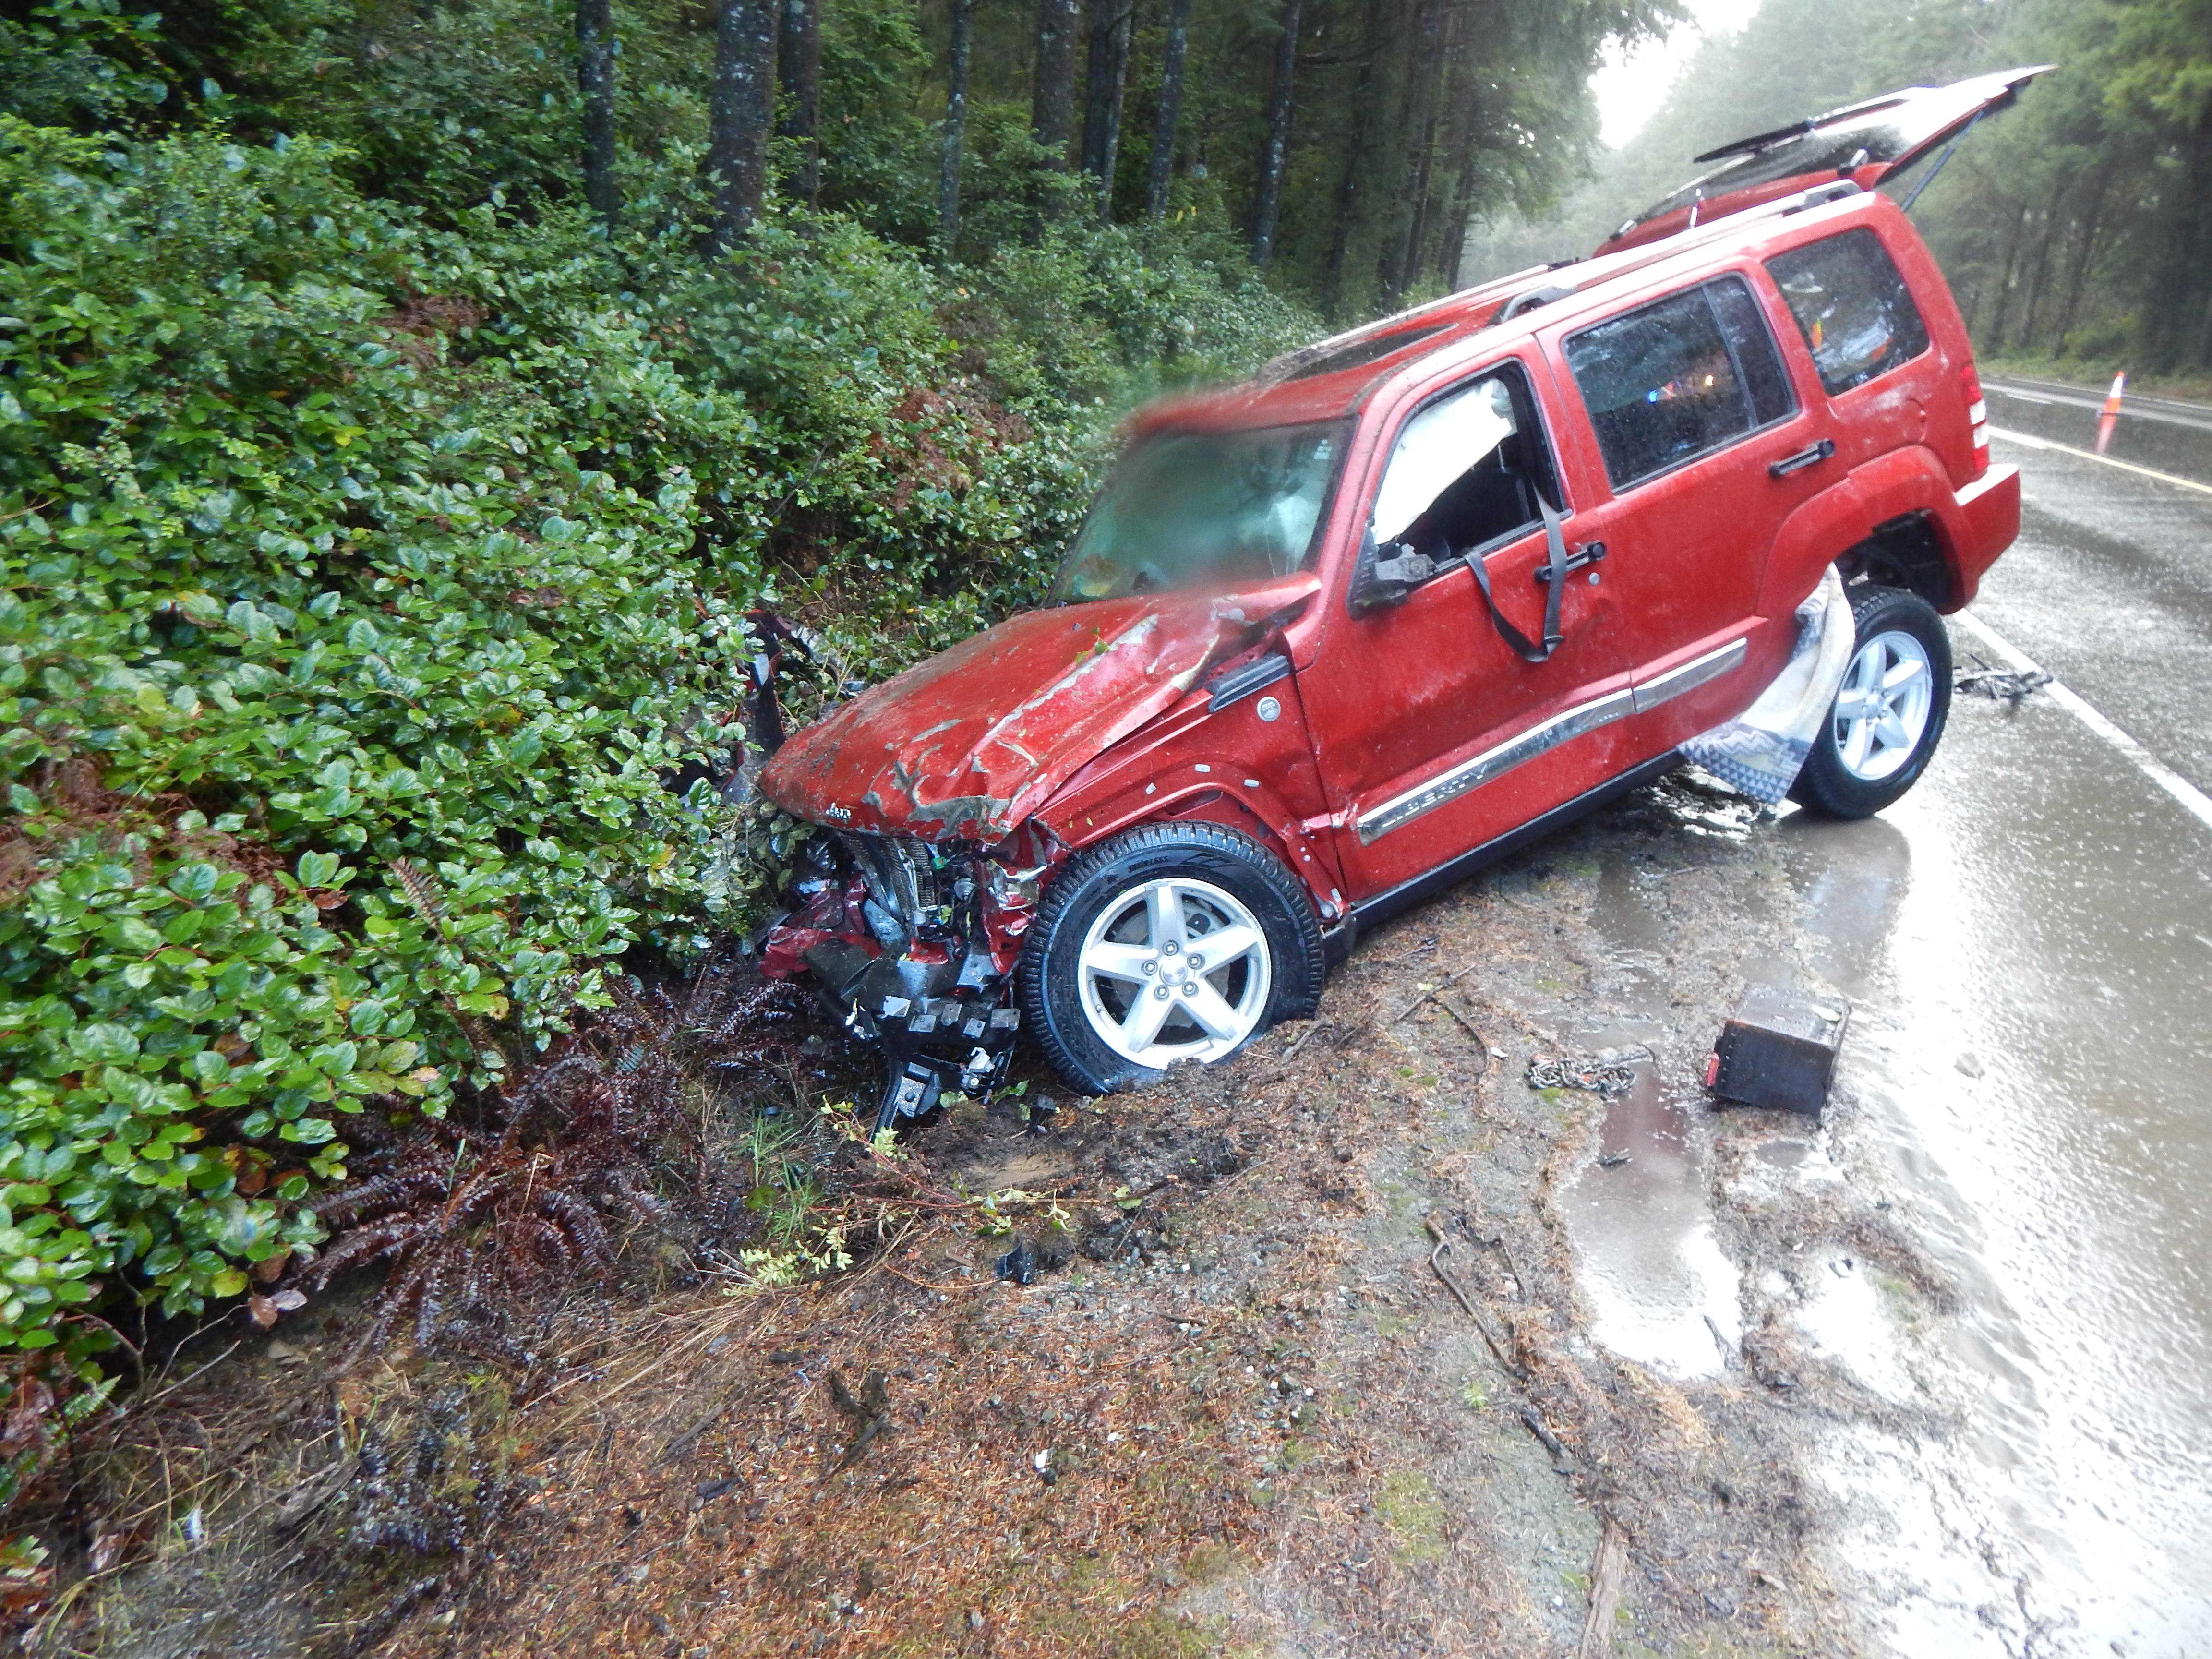 <p>Vanessa Goodwin, 25, was southbound on Hwy 101 between Coos Bay and Bandon when she lost control during a hail storm, police said. Her 2016 Toyota Scion crossed into oncoming traffic and collided with a northbound 2010 Jeep Liberty. The driver of the Jeep - Everett Harty, 70, of Winston - and his passenger - 65-year-old Jeanette Harty - were taken to Bay Area Hospital in Coos Bay, police said. They are expected to survive. (OSP)</p>